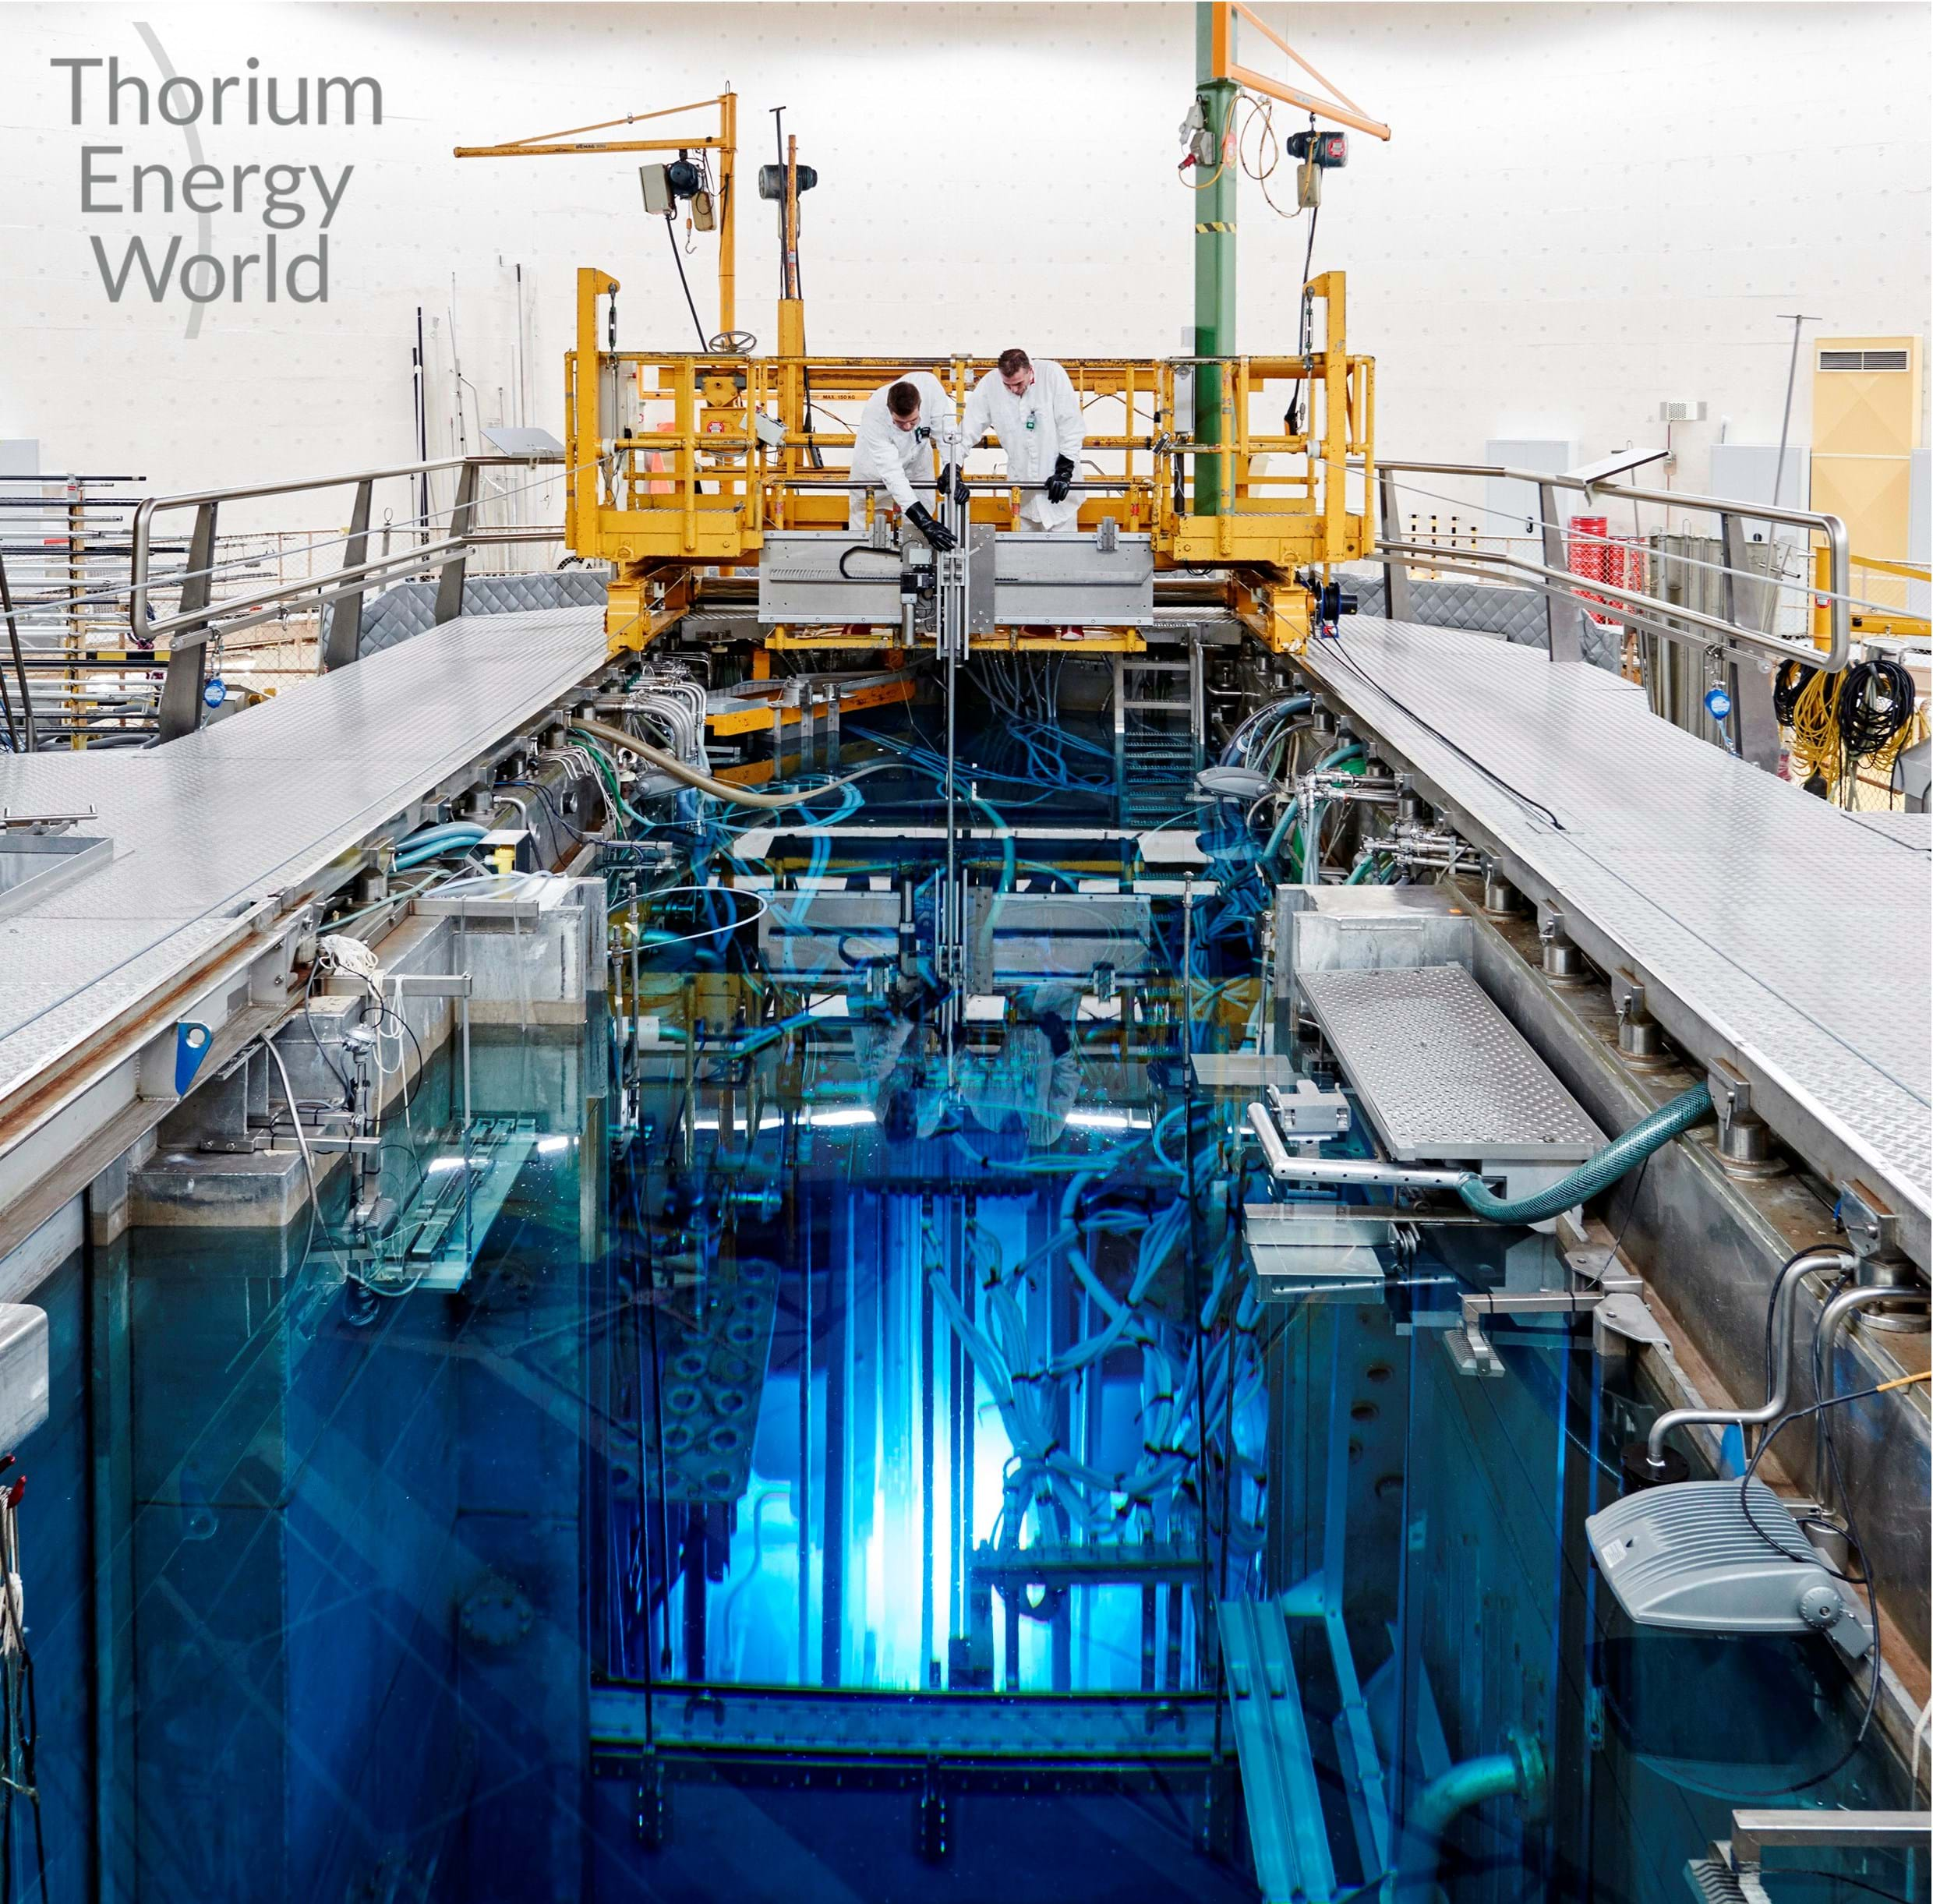 Thorium Nuclear Research Boost News The Chemical Engineer Worlds Largest Fusion Reactor A Molten Salt Tmsr Experiment First In Over 45 Years Has Been Started Netherlands